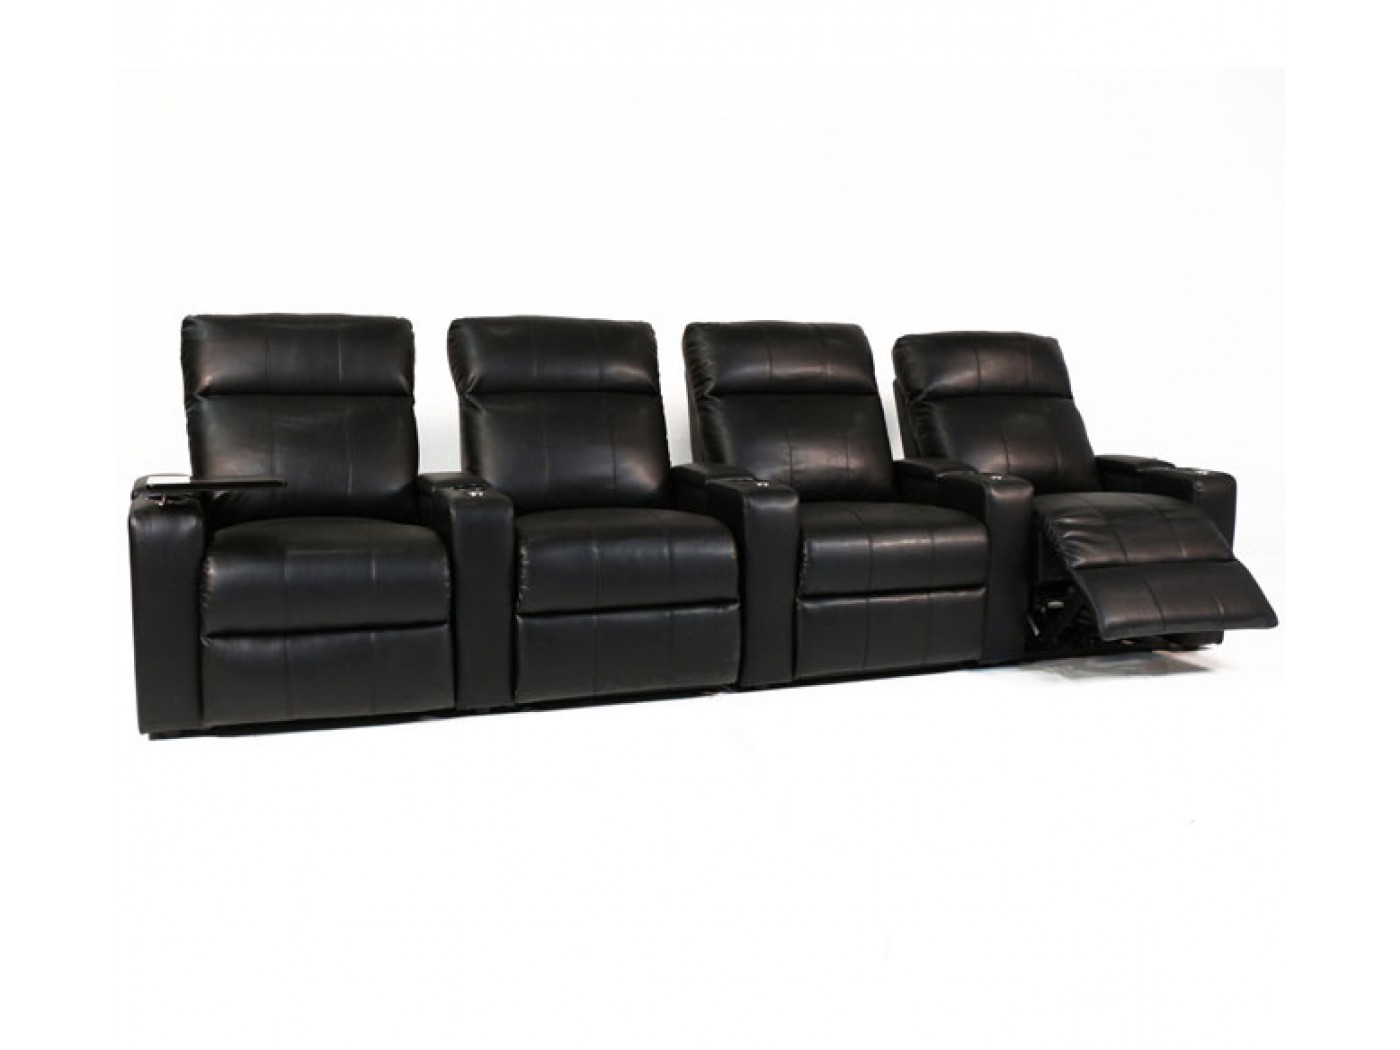 Rowe One Plaza 4 Seater In Black